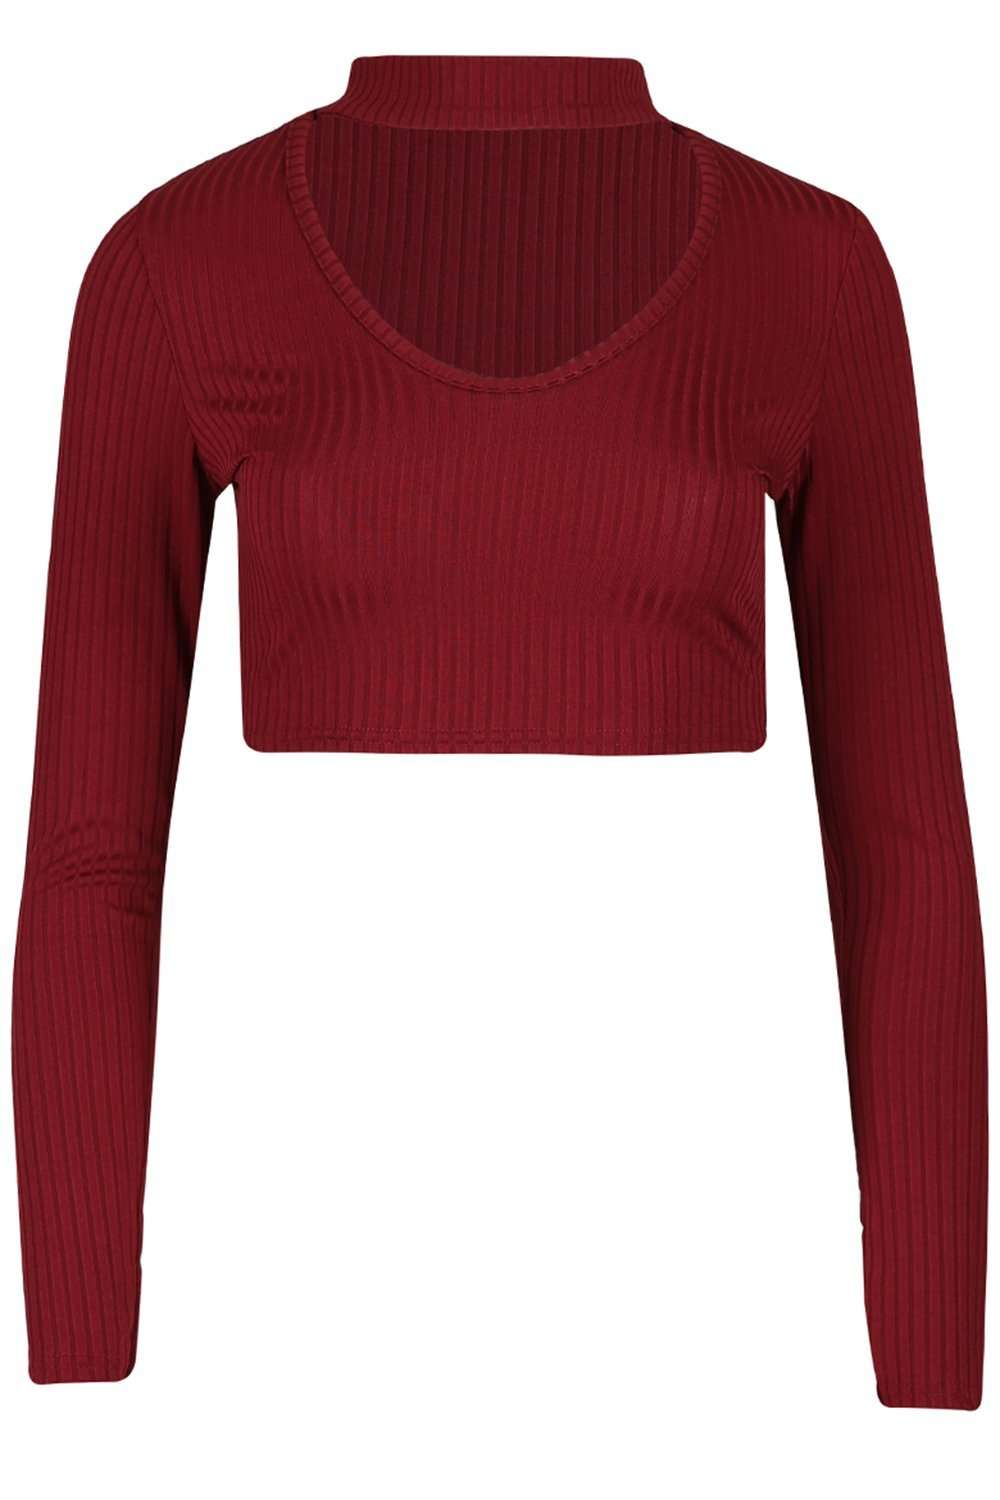 Darci Long Sleeve Choker Neck Crop Top - bejealous-com